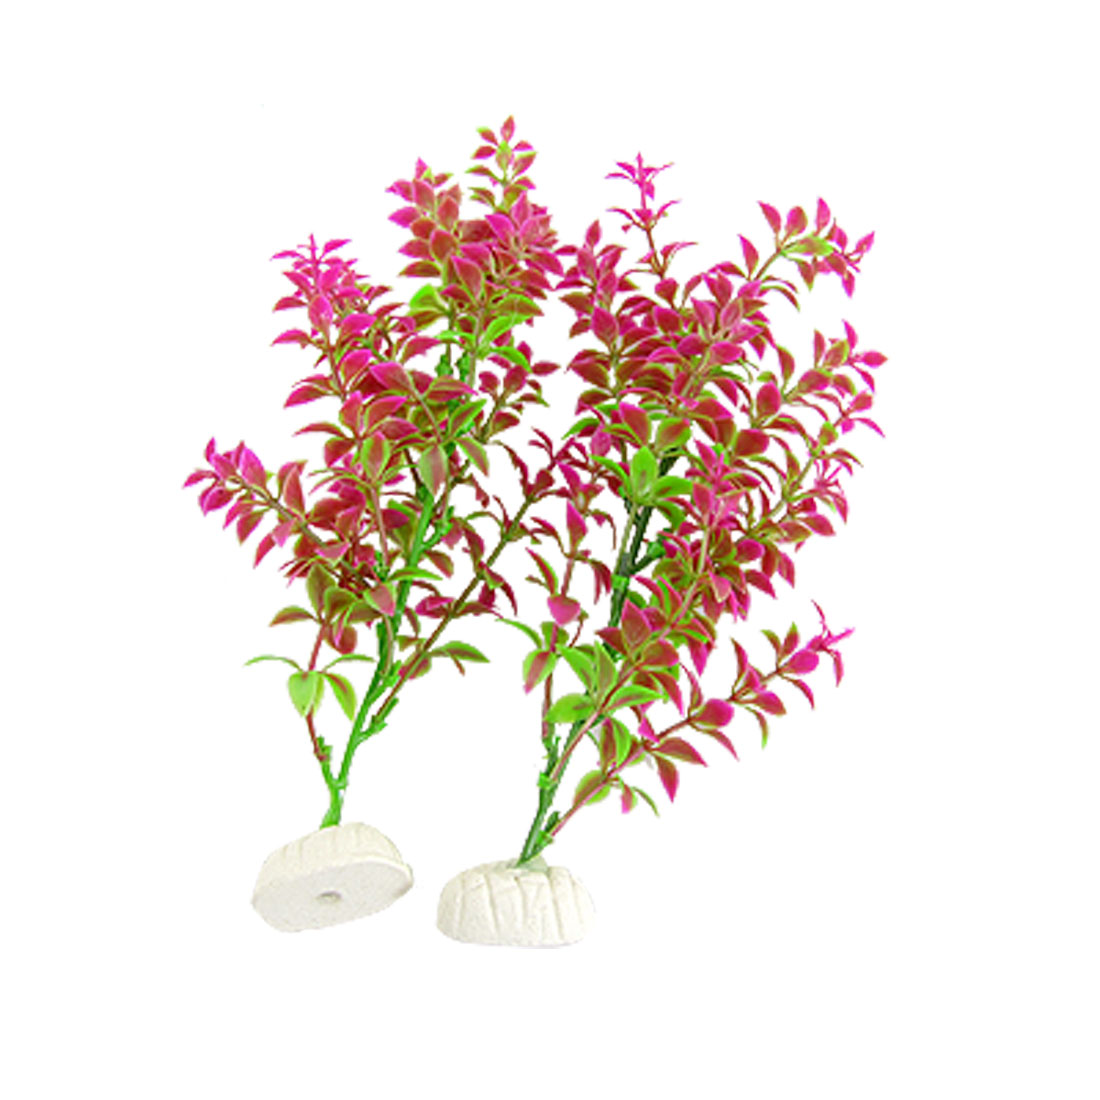 2 Pcs Fuchsia Green Plastic Plants Grass Decor for Aquarium